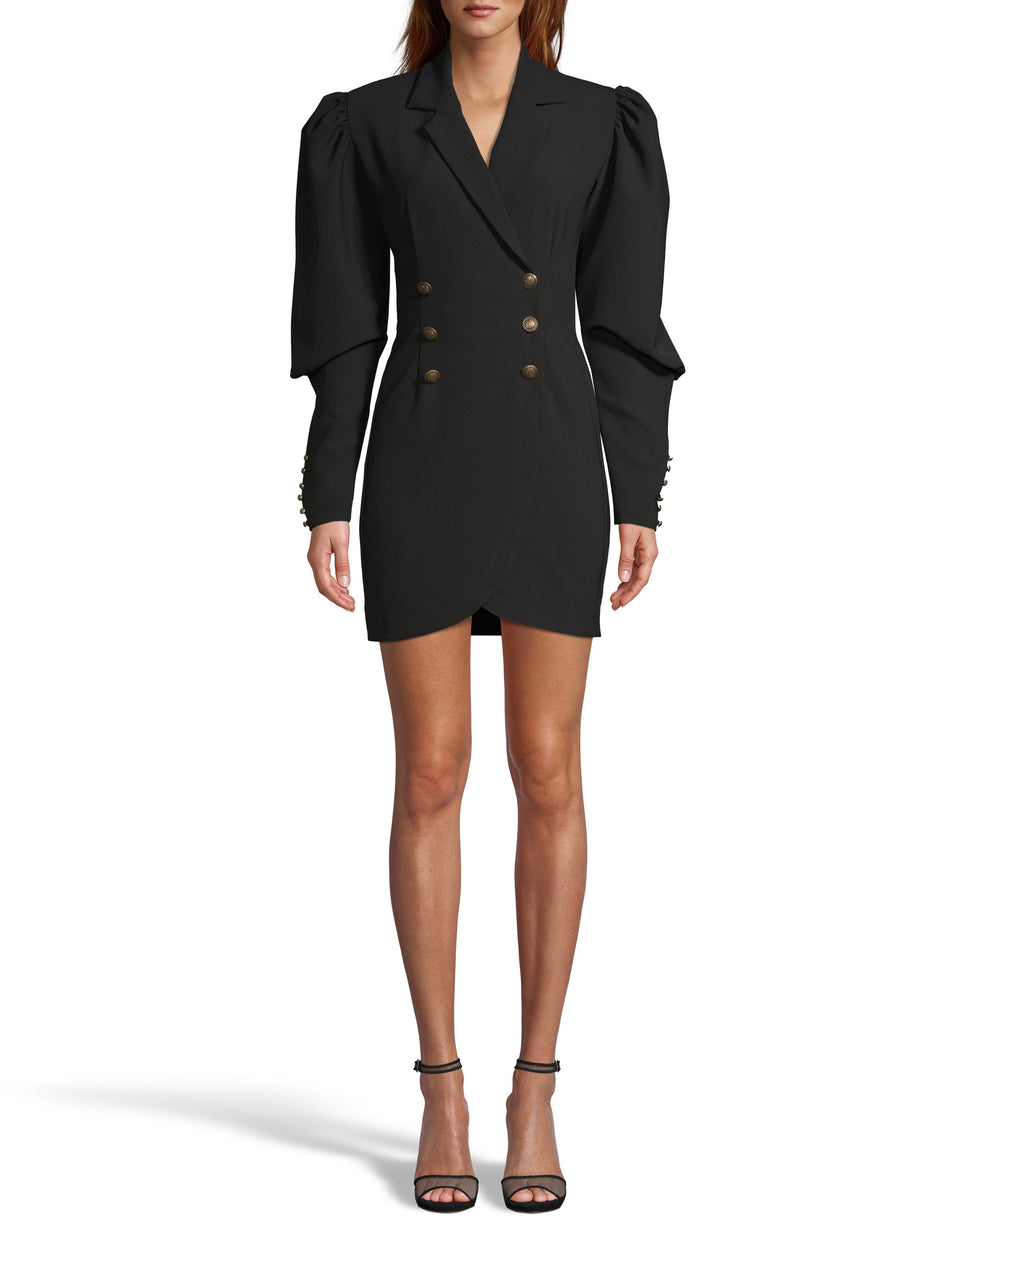 CE18080 - TECHY CREPE DOUBLE BREASTED BLAZER DRESS - dresses - short - Our double breasted blazer dress is designed in heavy techy crepe fabric and features a statement puff sleeve with gold orante button details on the sleeves and body. Add 1 line break Stylist tip: Style with black booties like on from our Fall 2020 catwalk.